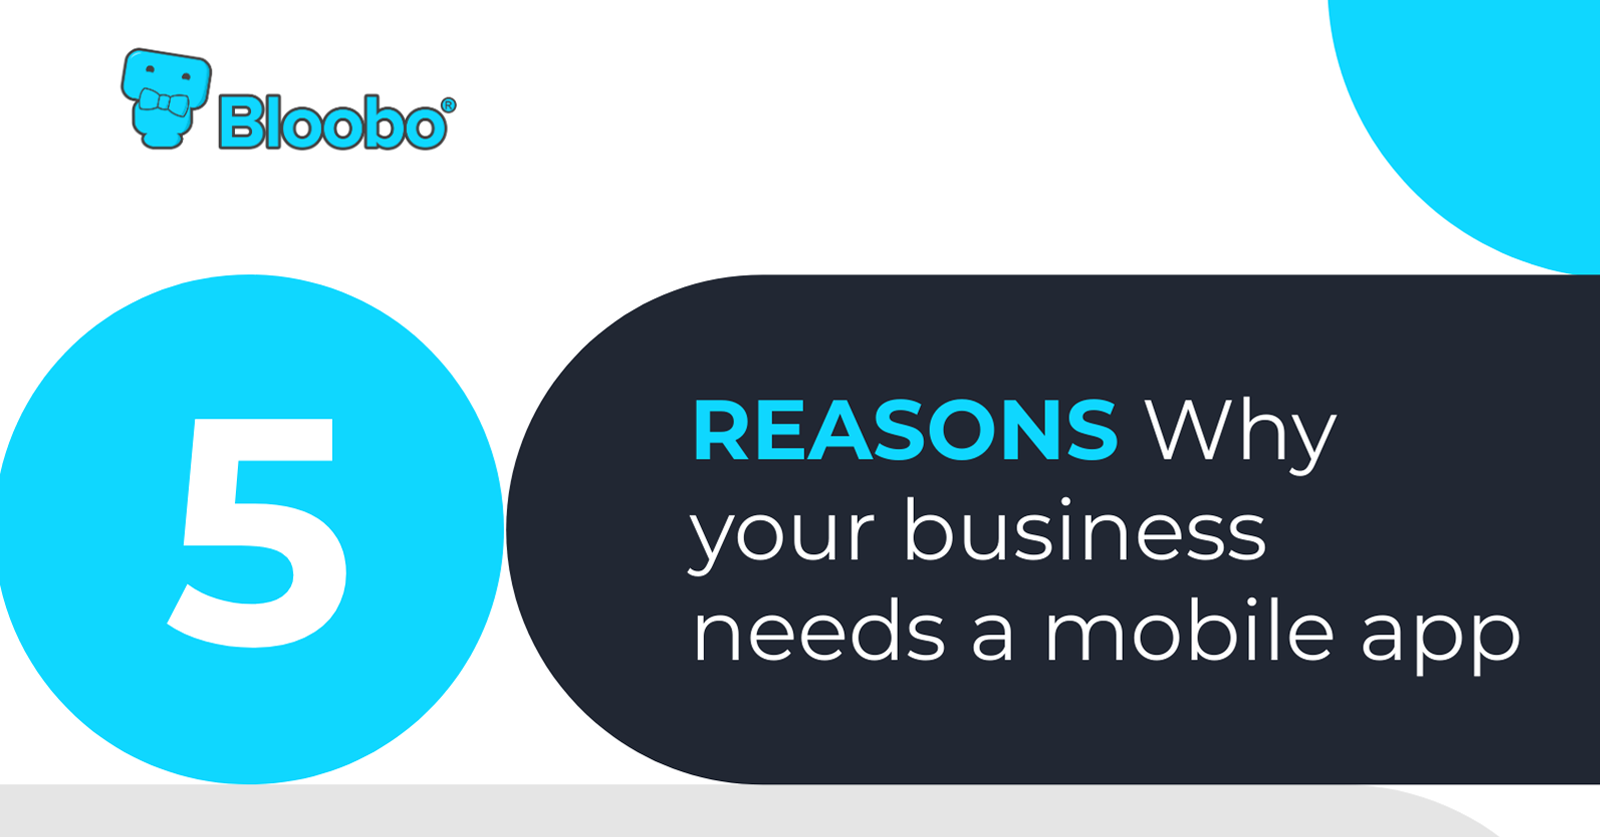 5 Reasons for Mobile App for Business